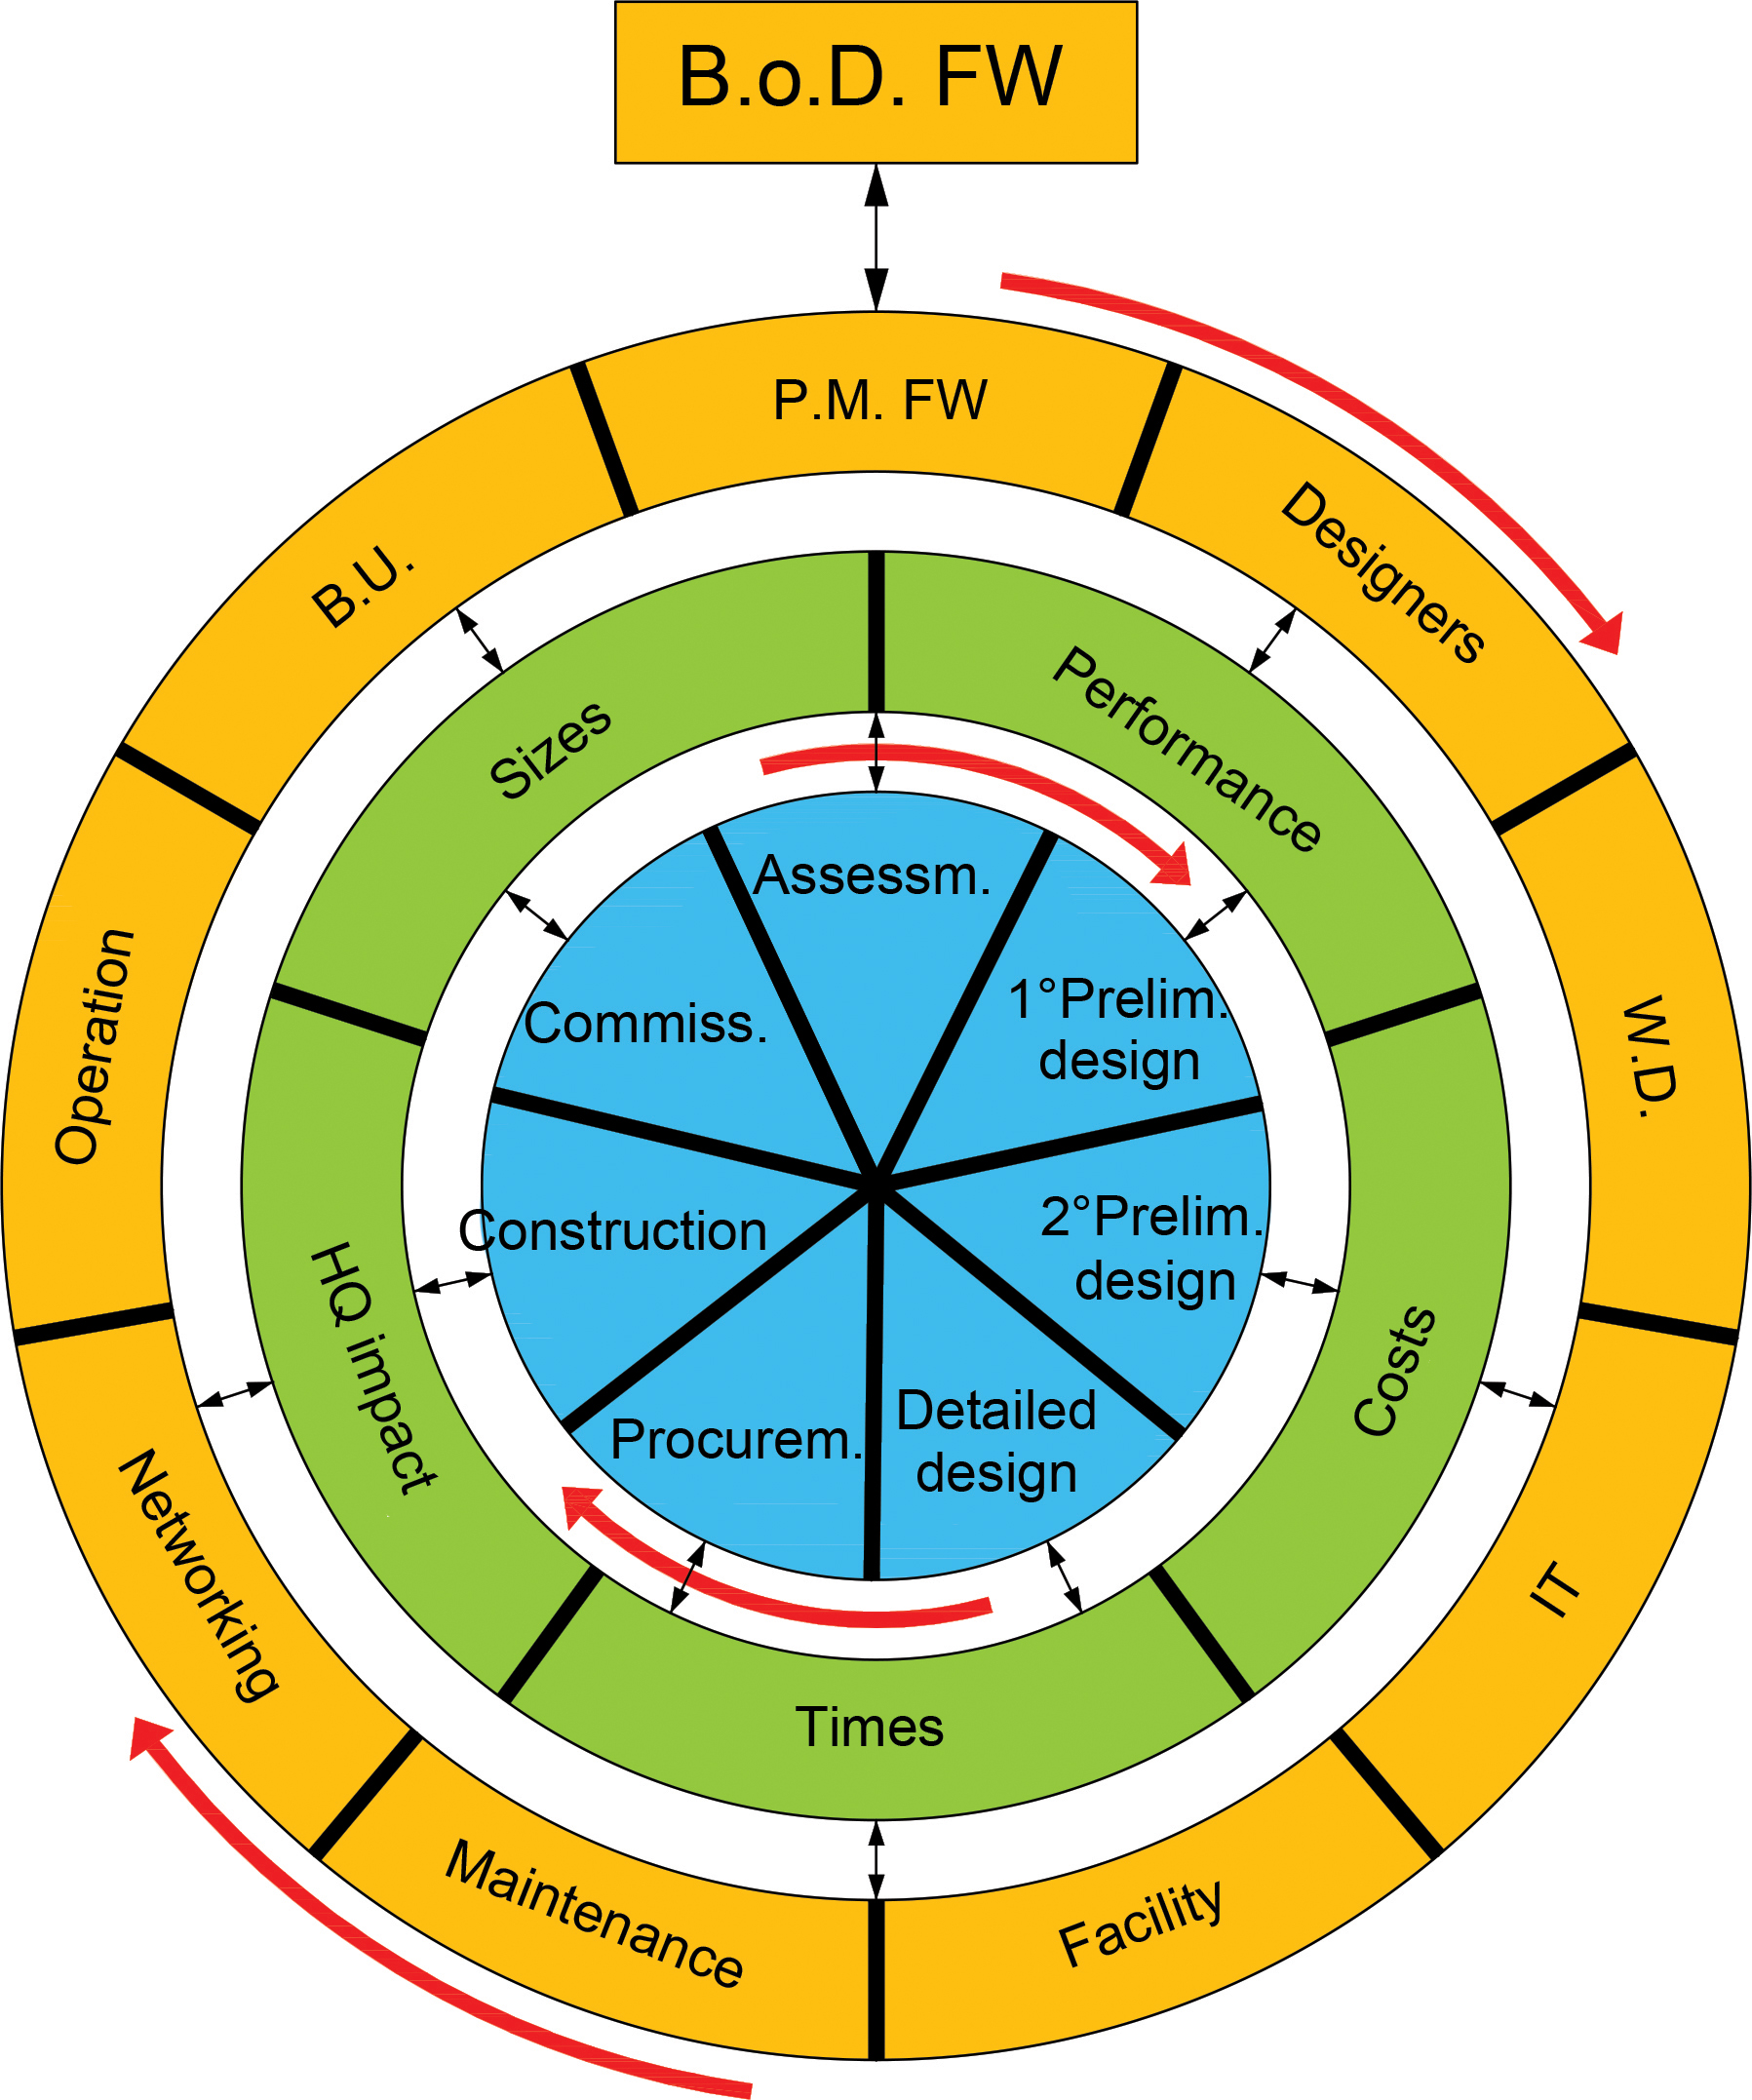 Figure 7. Deployment phases and process model